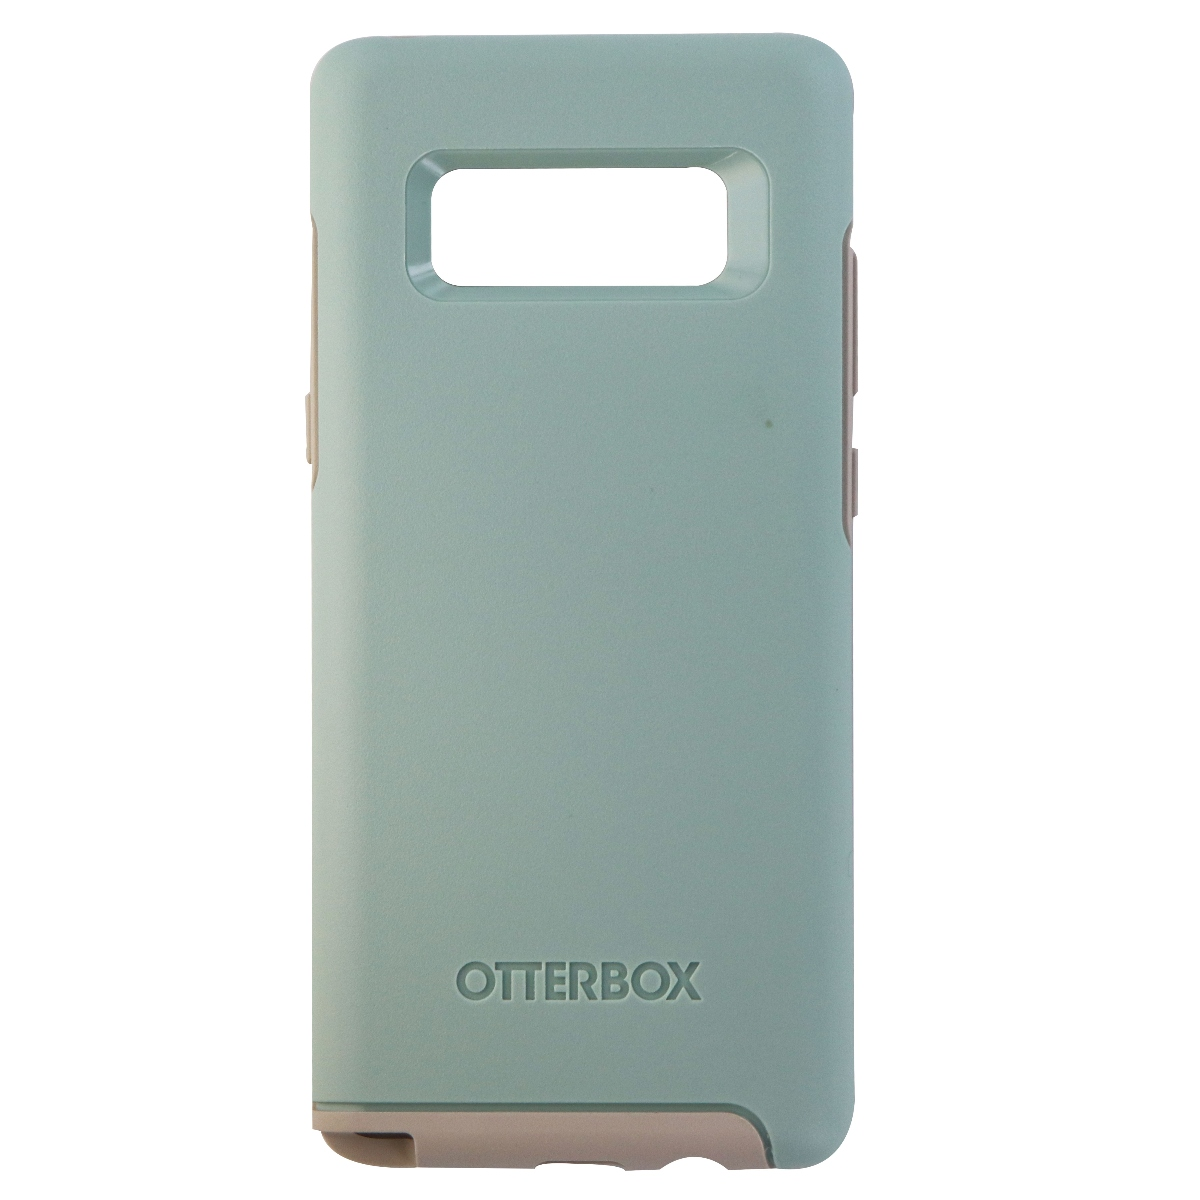 OtterBox Symmetry Case for Samsung Galaxy Note 8-Muted Waters (Muted Blue/Beige)